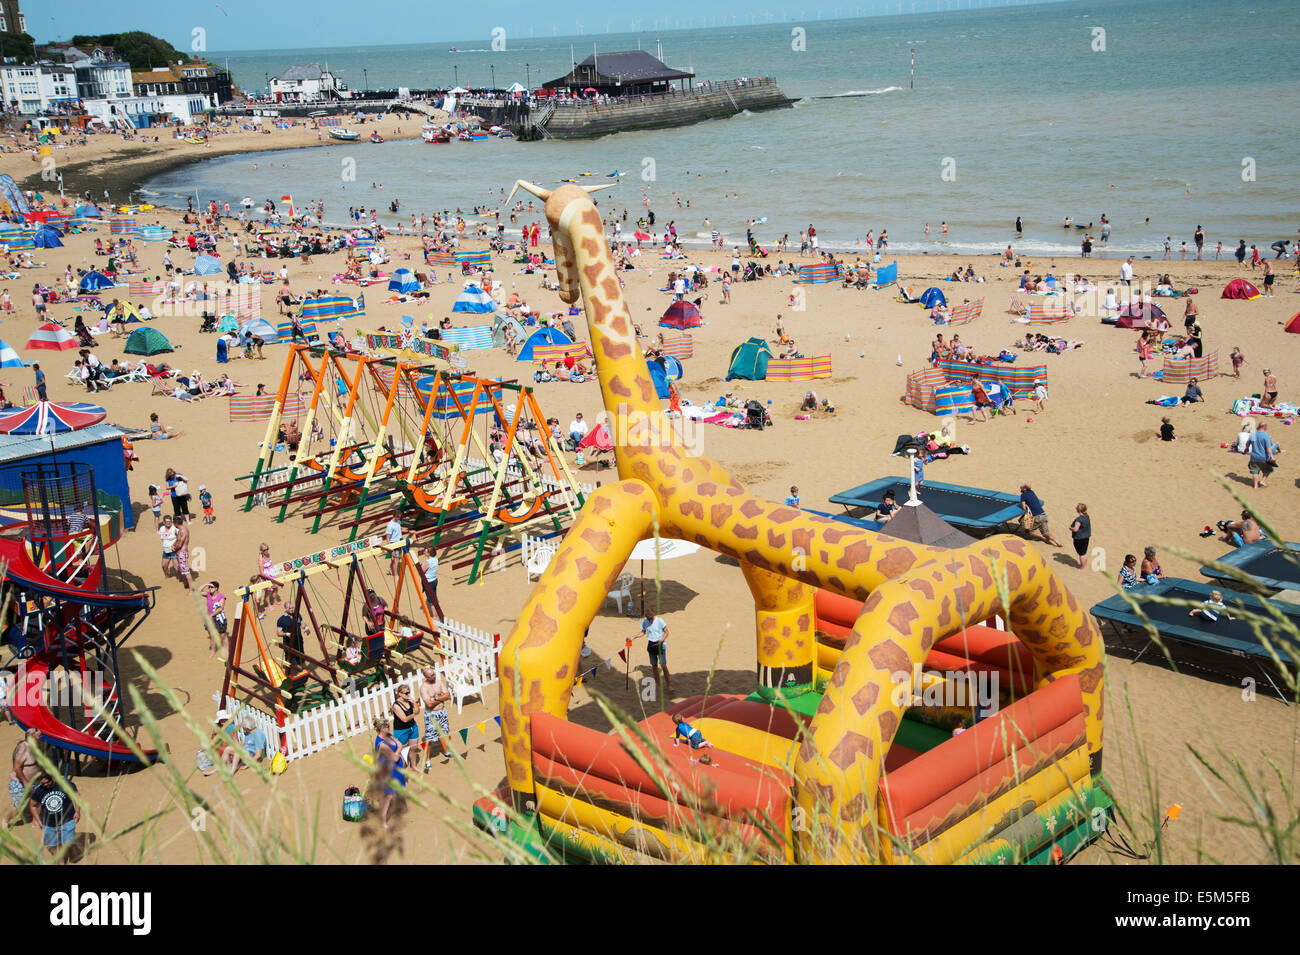 Broadstairs, Kent. Crowded beach with swings and bouncy giraffe - Stock Image